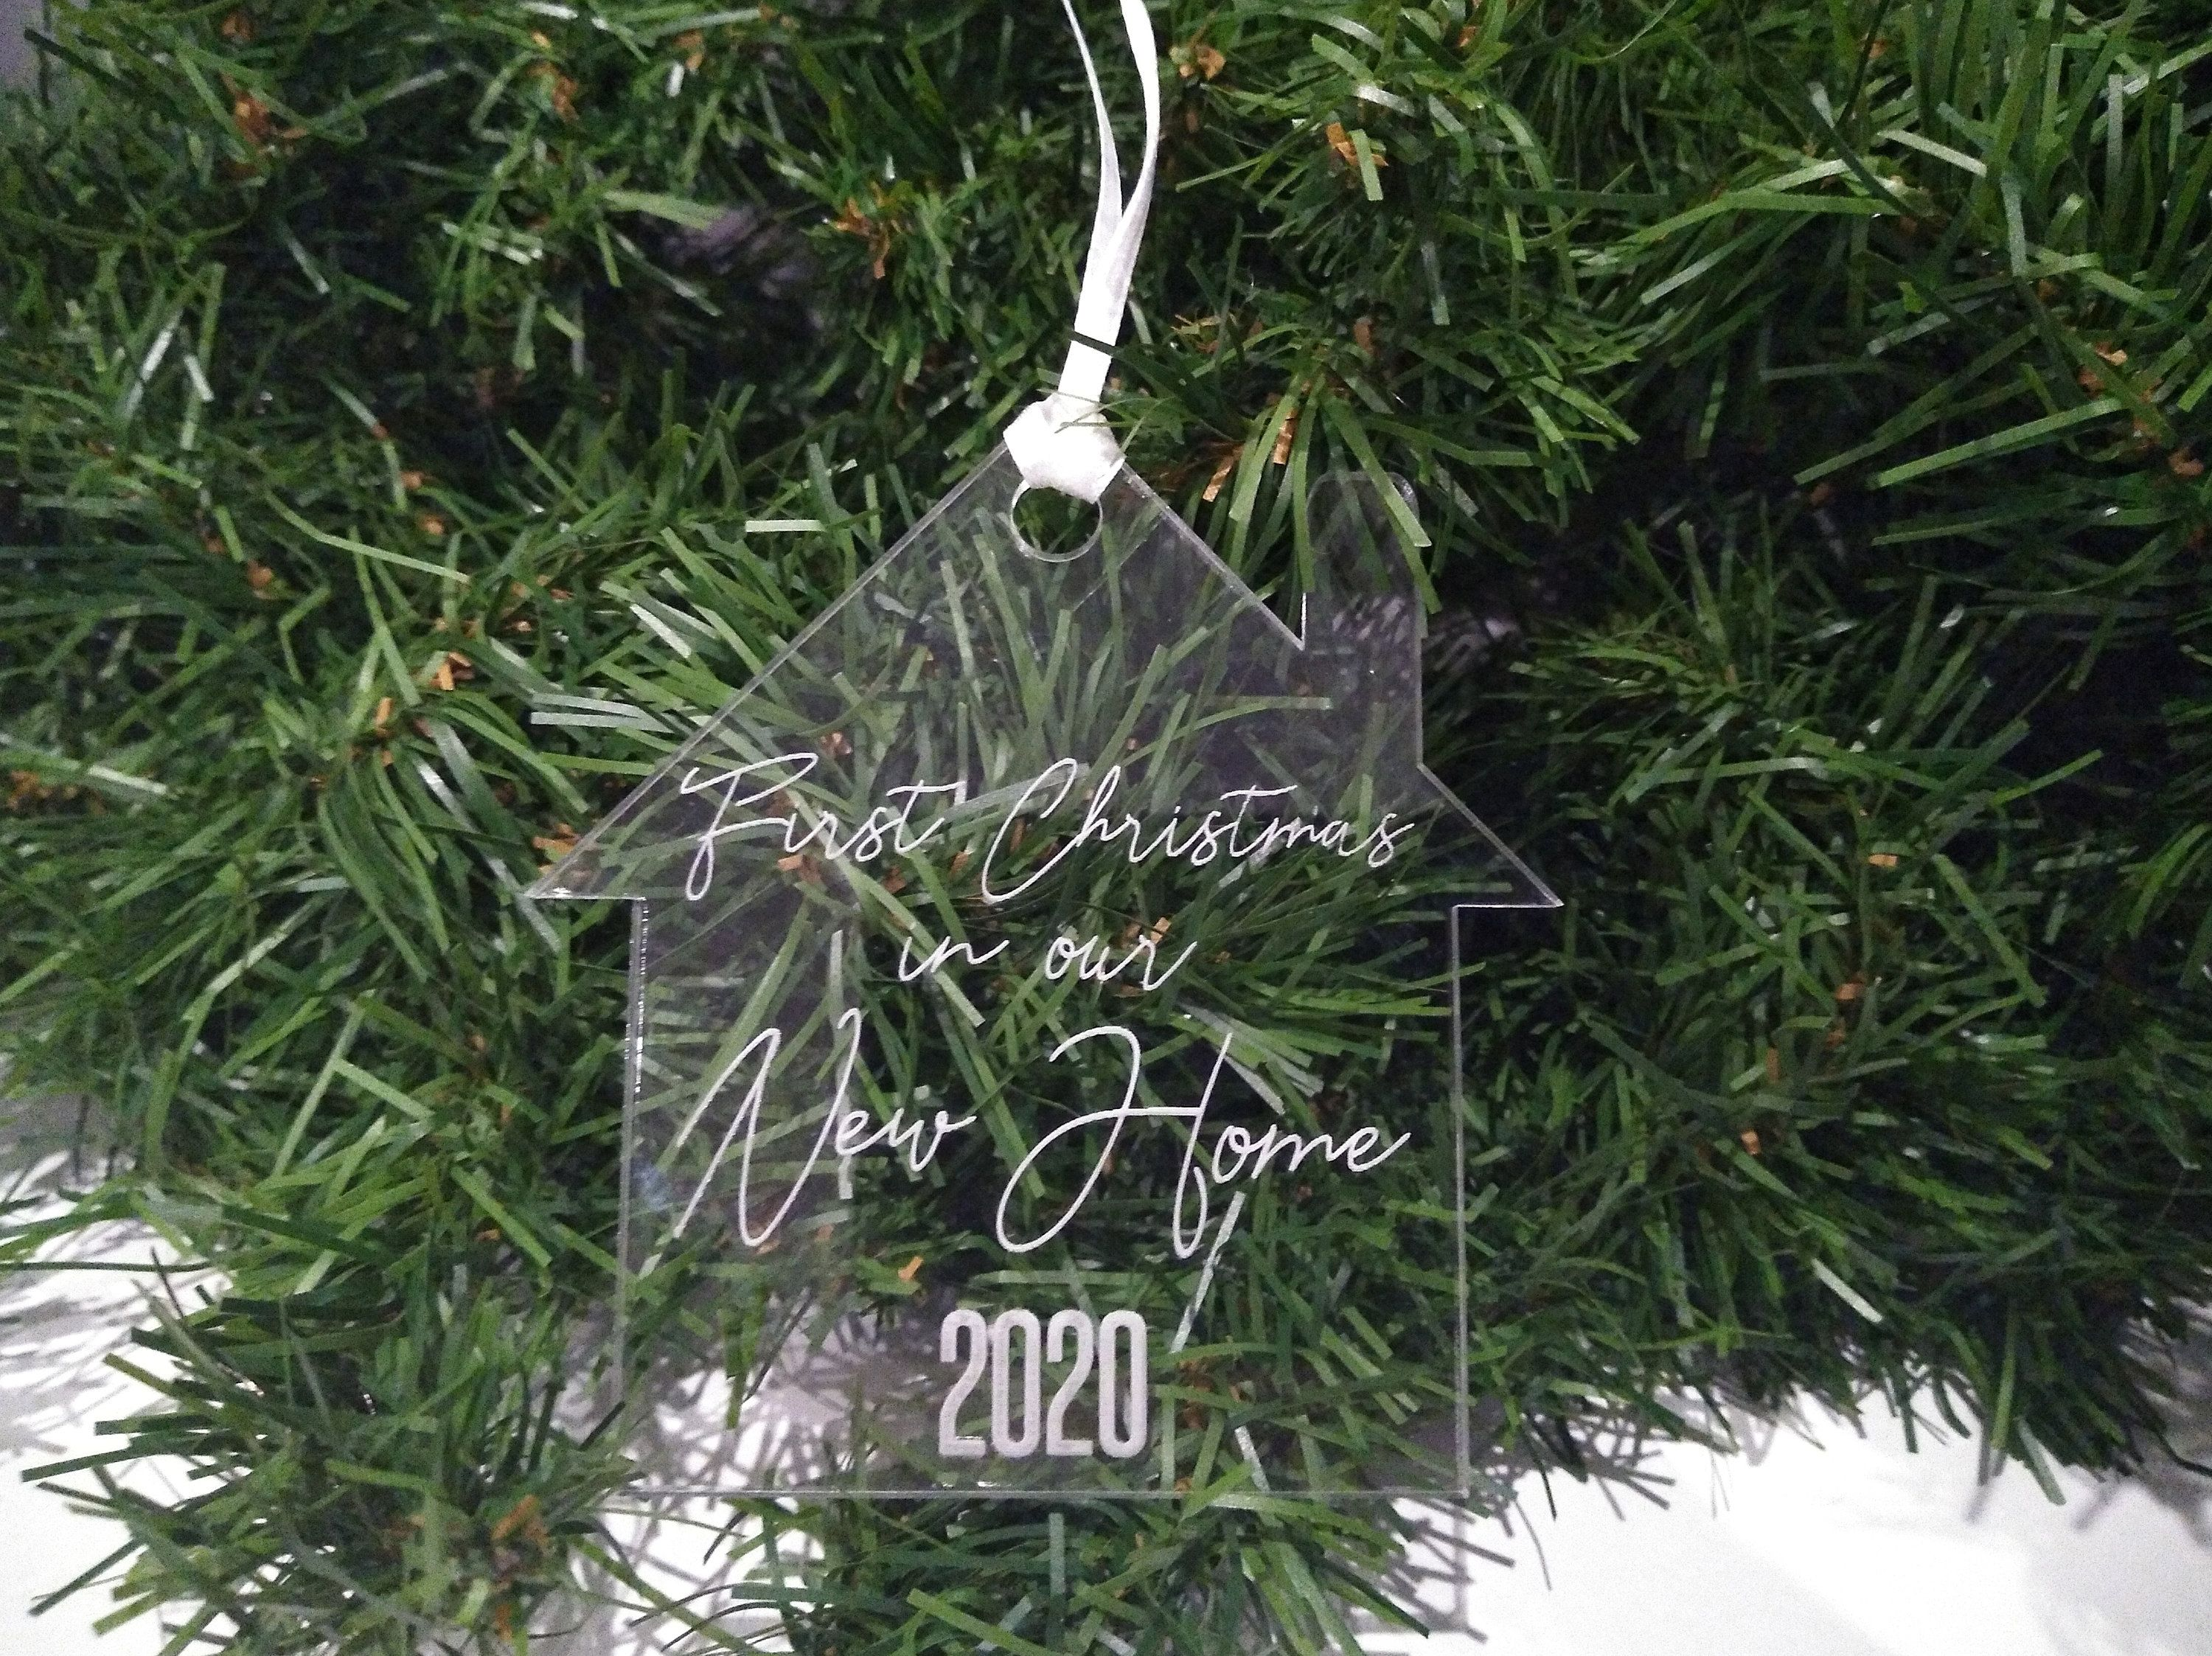 Gifts Fornew Homeowners For Christmas 2020 First Christmas In Our New Home 2020 Engraved Acrylic | Etsy in